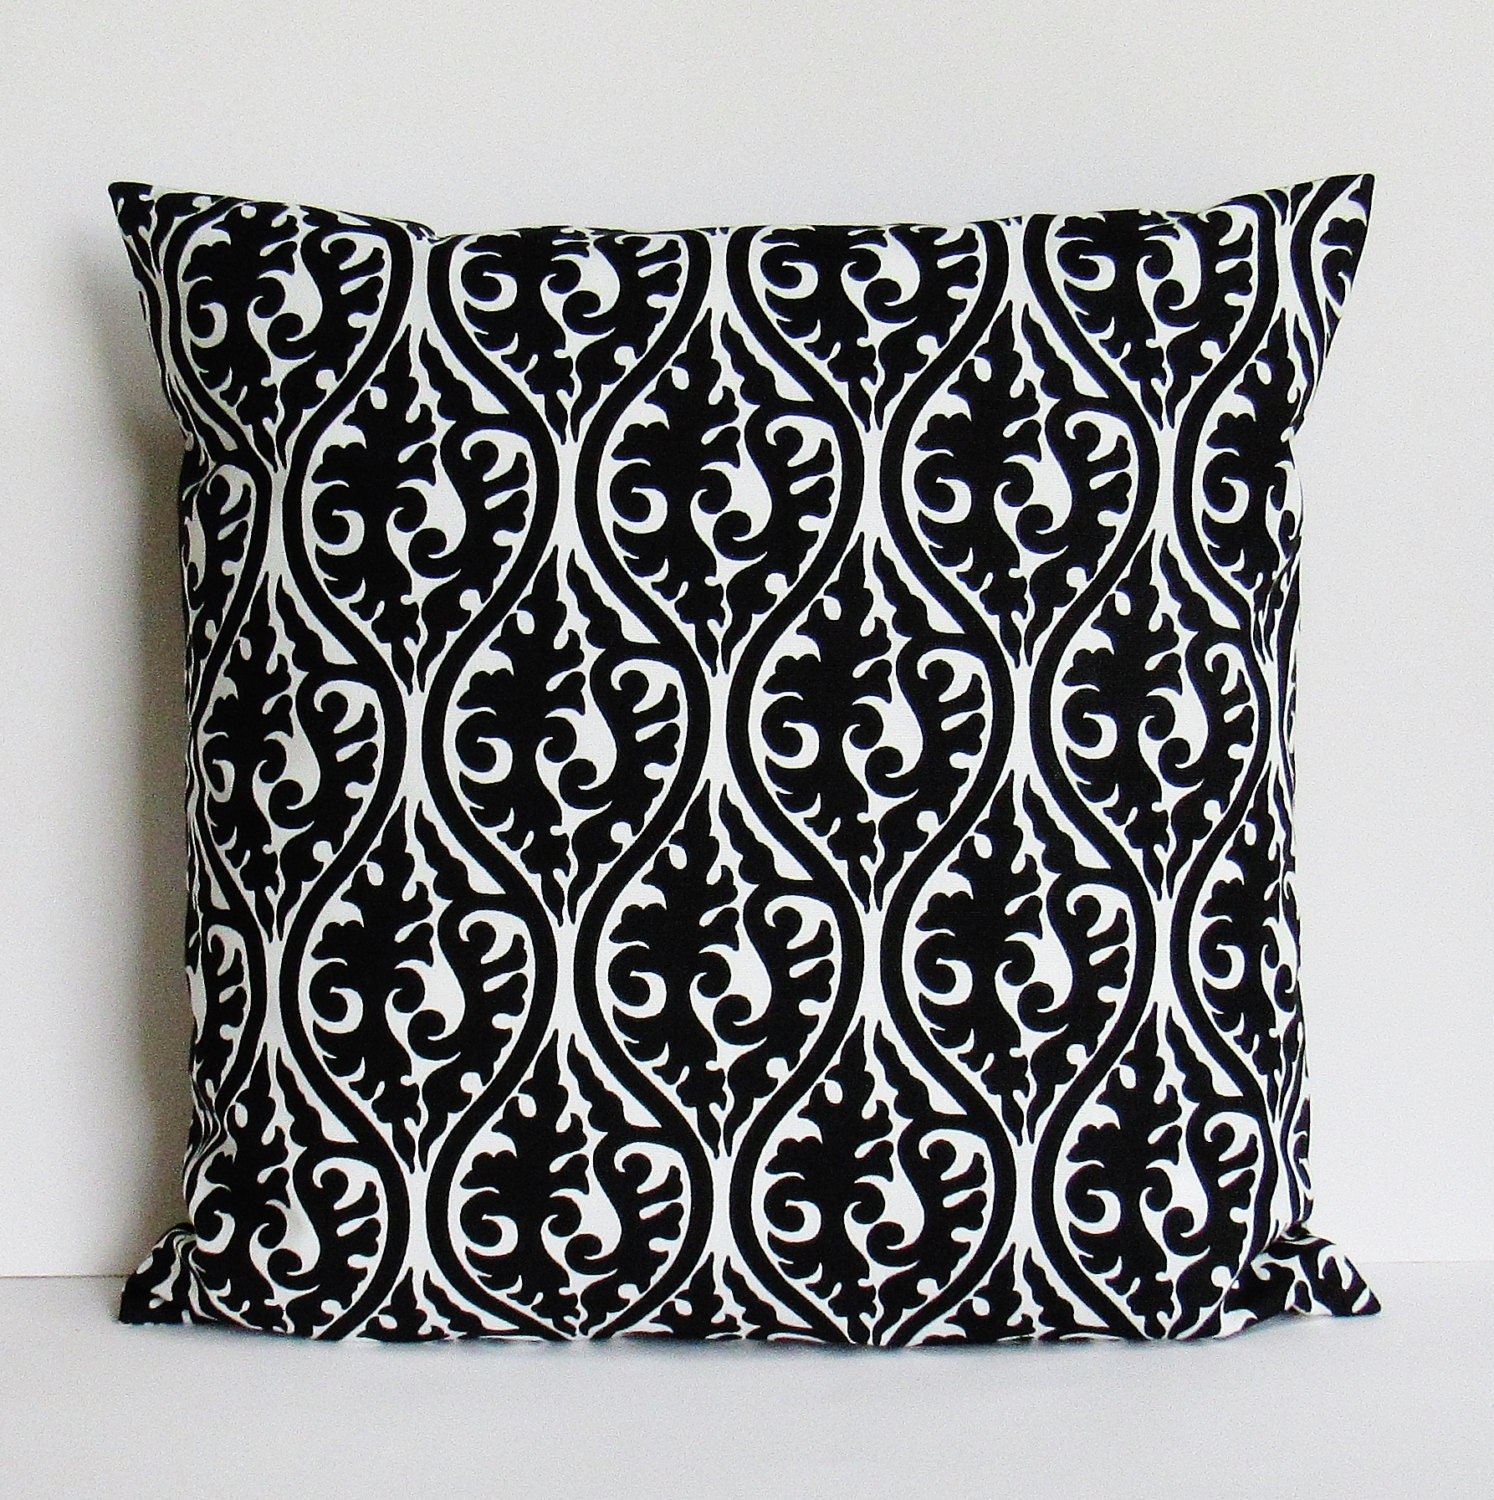 Black Throw Pillows For Bed : Black Throw Pillow Cover Geometric Decorative Accent Sofa Bed